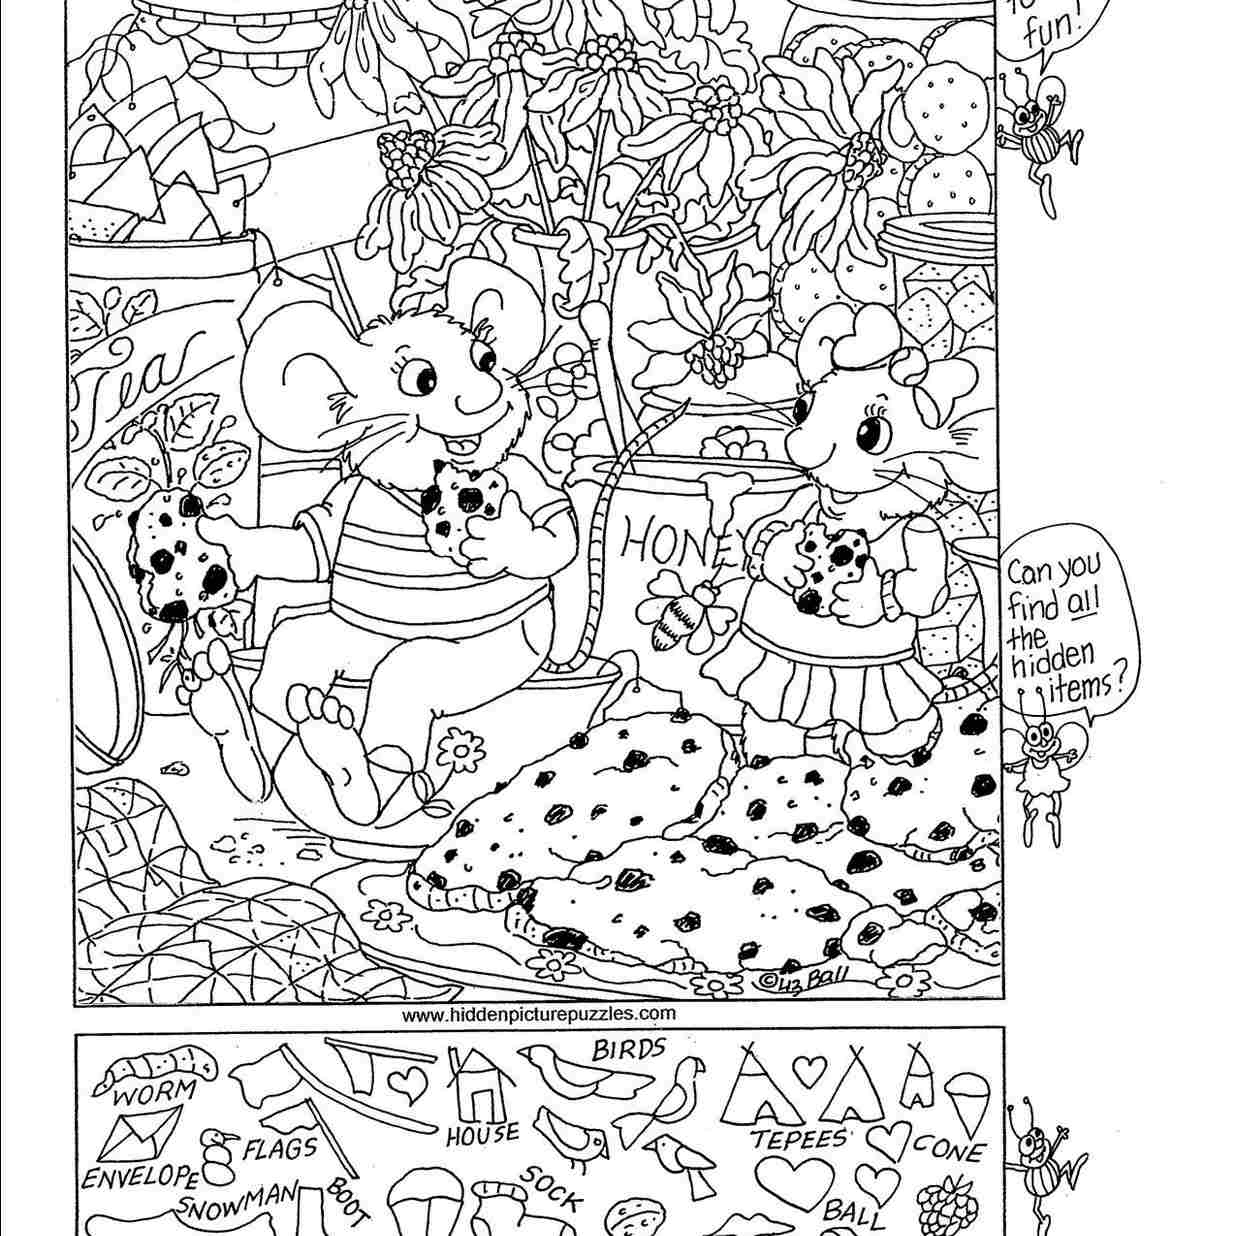 7 Places To Find Free Hidden Picture Puzzles For Kids - Free Printable Hidden Object Games